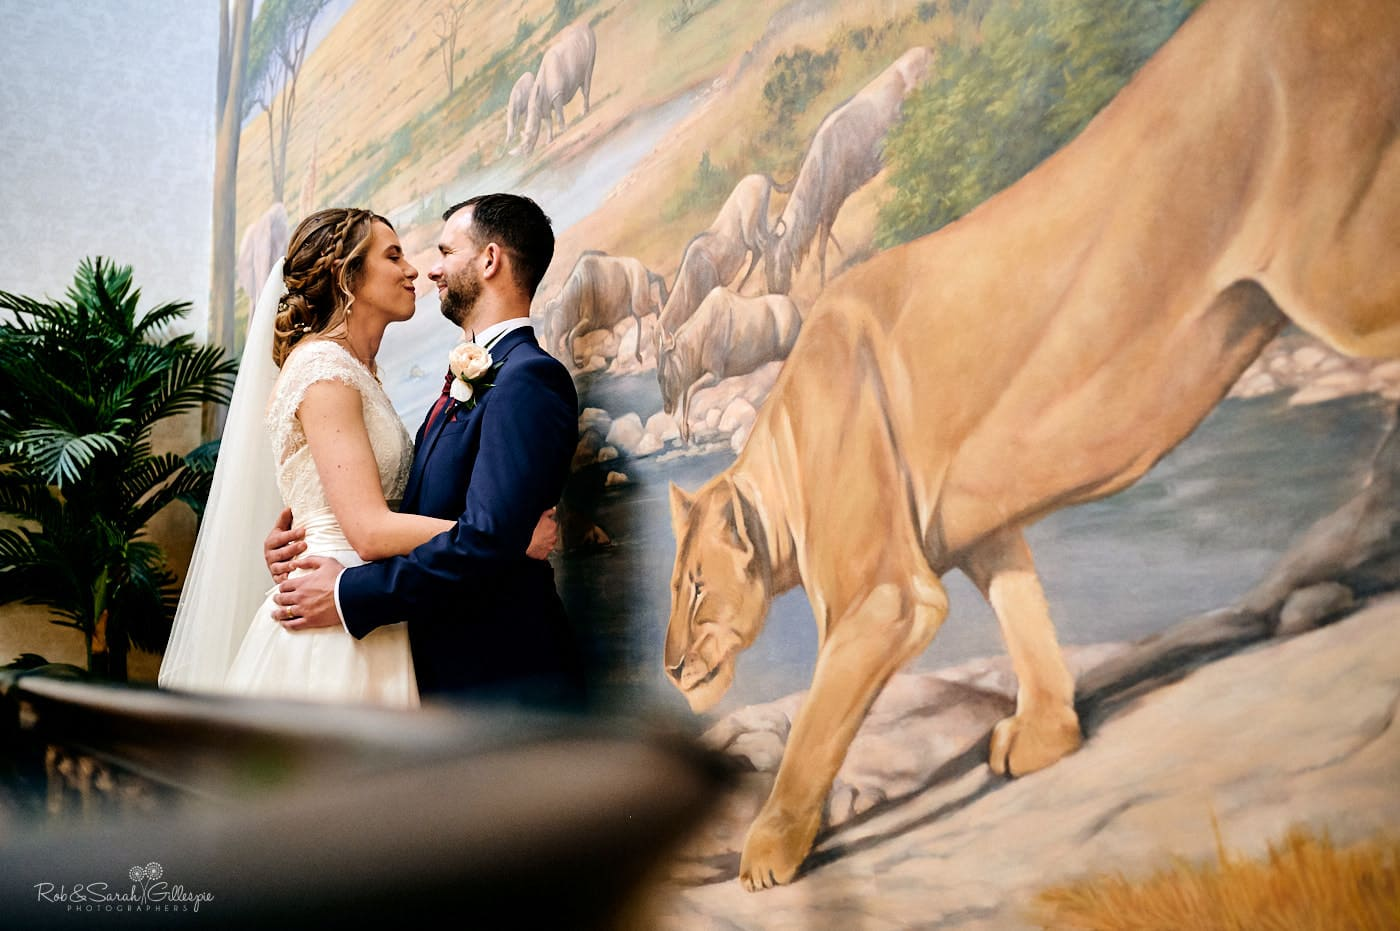 Wedding couple in front of large mural feautirng wild animals at Spring Grove House